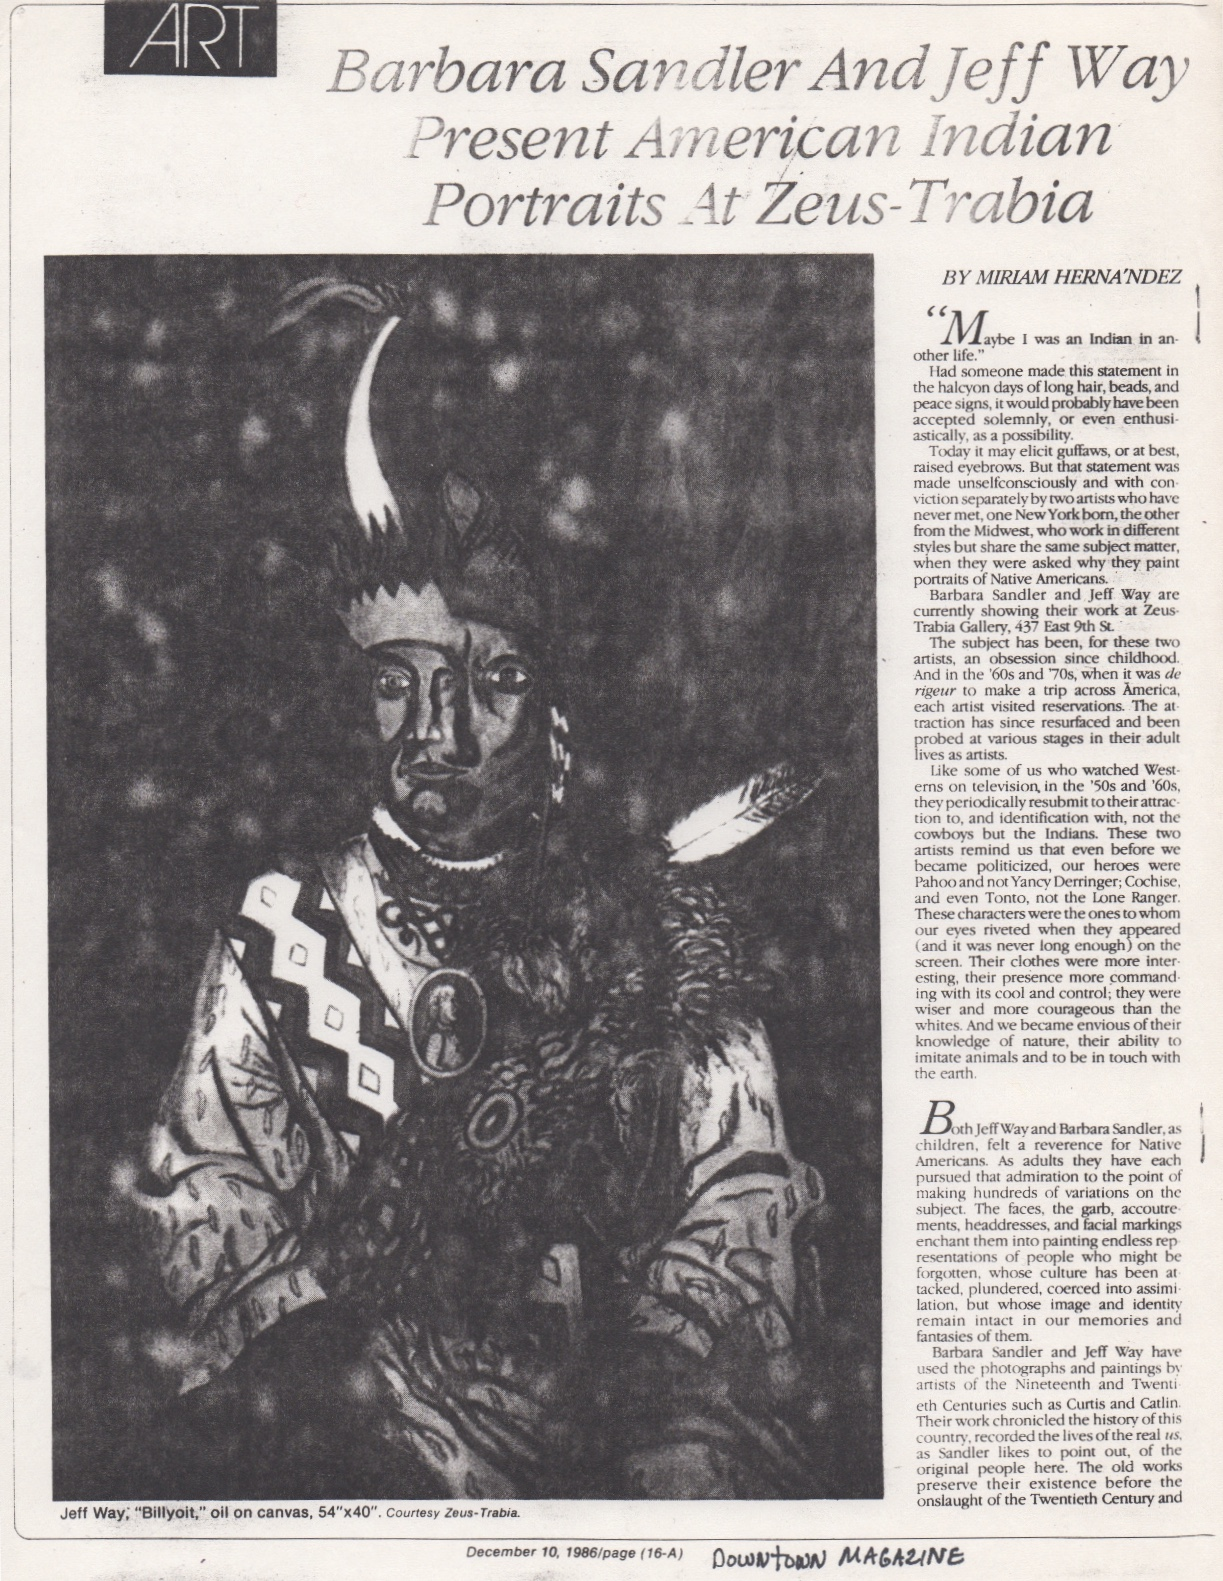 Barbara Sandler and Jeff Way Present American Indian Portraits at Zeus-Trabia, Hernandez Miriam, Downtown Magazine, Dec 1986